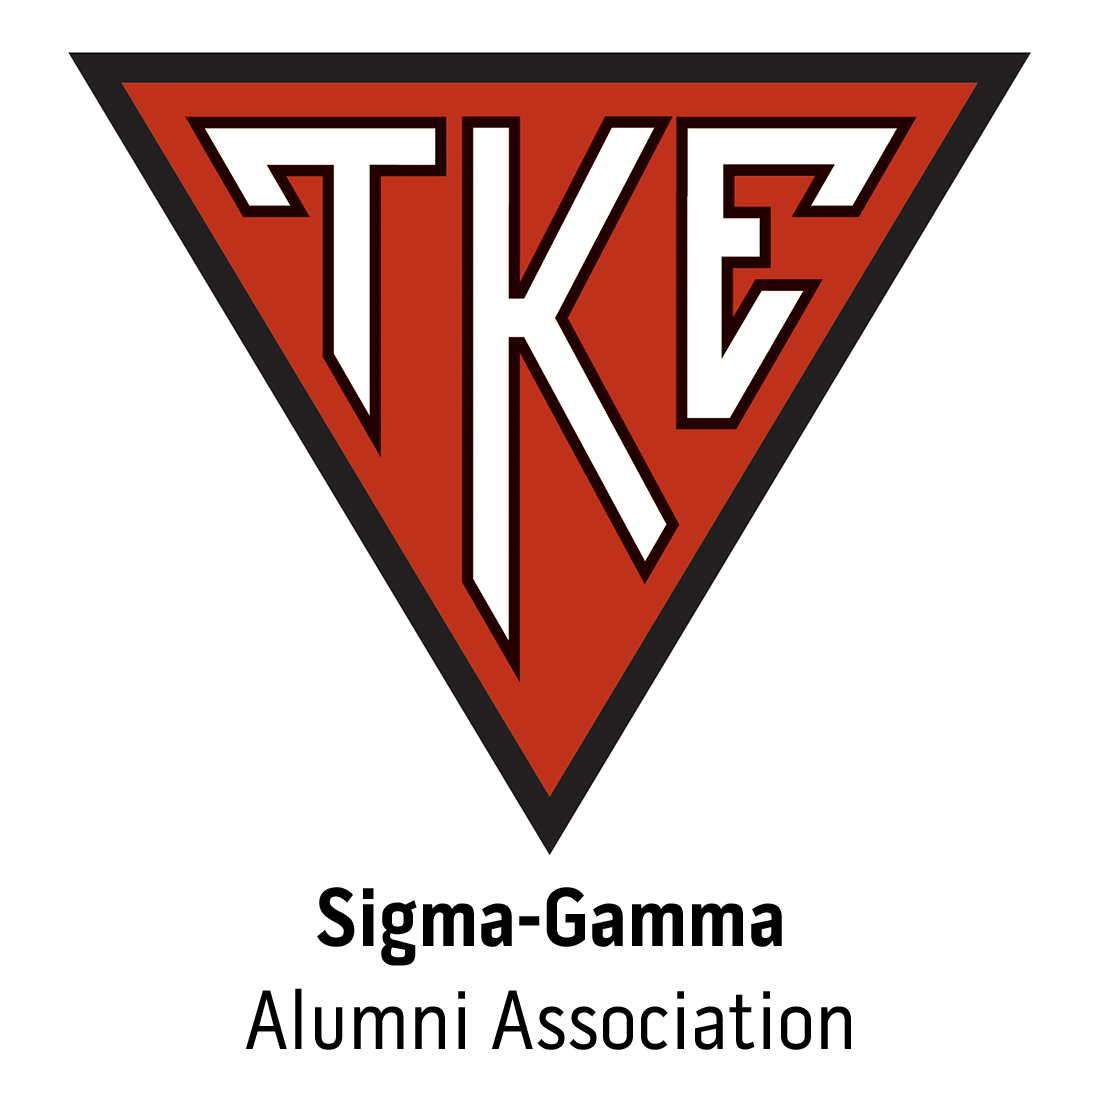 Sigma-Gamma Alumni Association for State University of New York at Plattsburgh